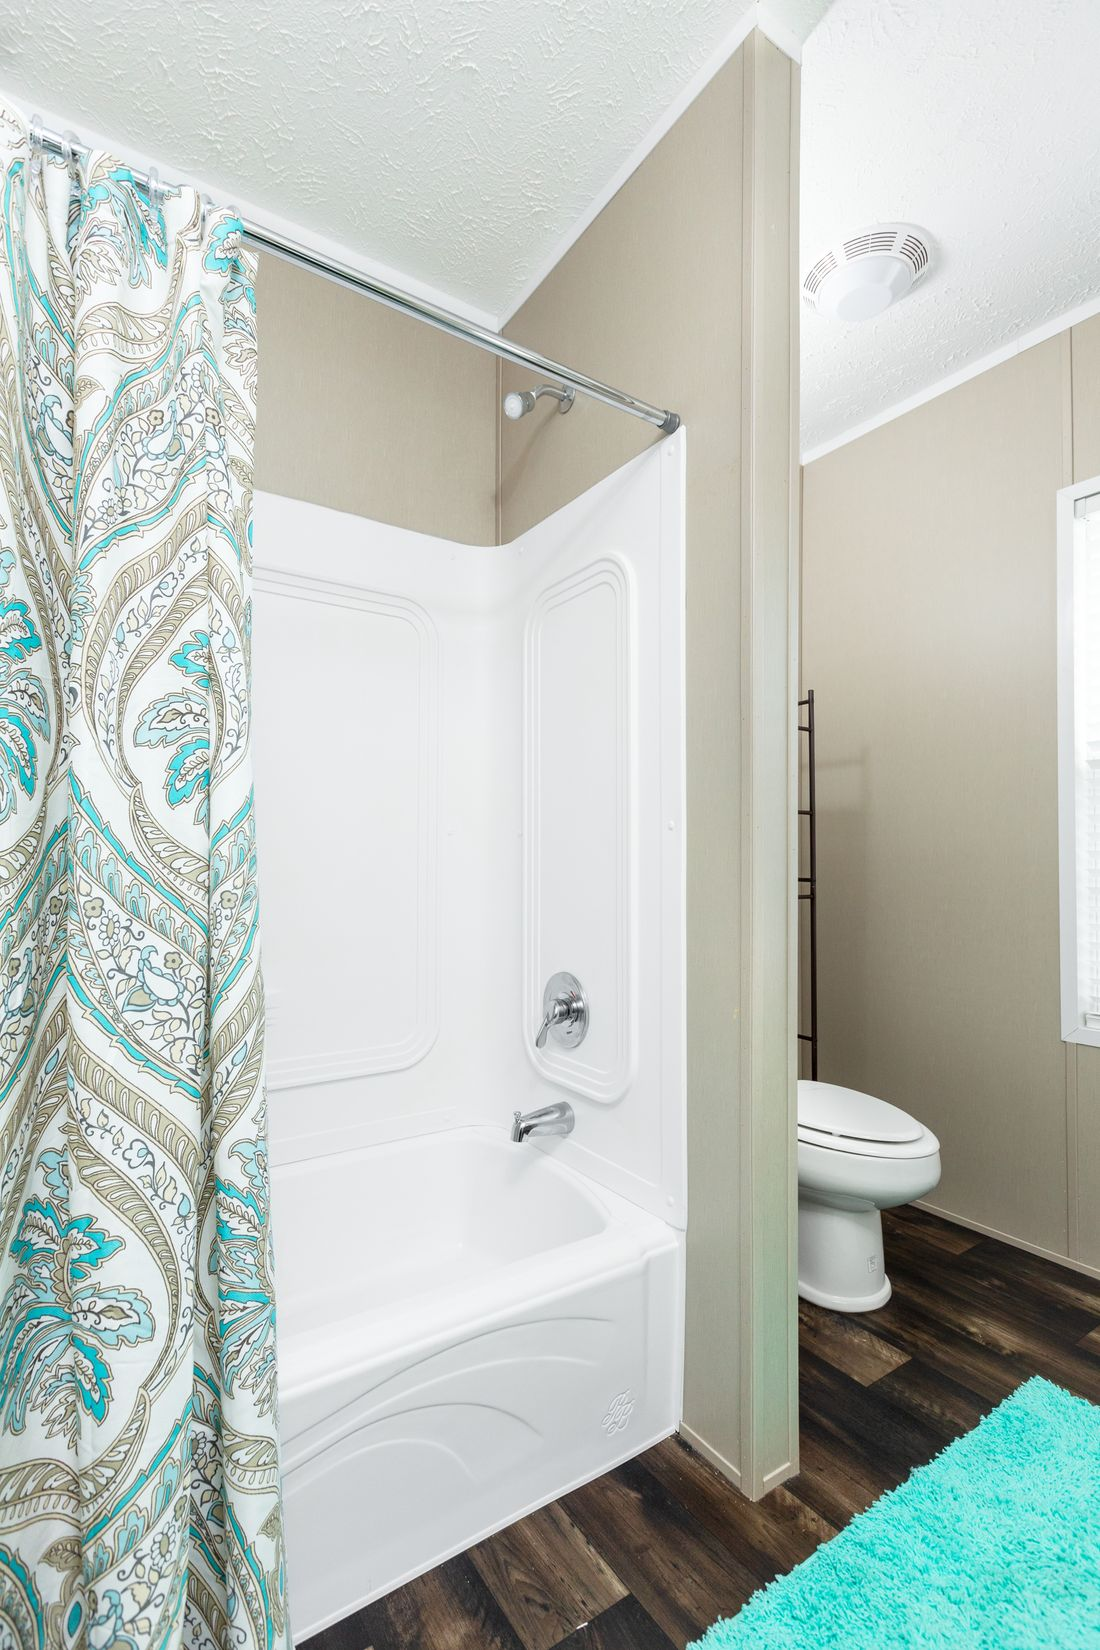 The ISLAND BREEZE 56' Guest Bathroom. This Manufactured Mobile Home features 3 bedrooms and 2 baths.